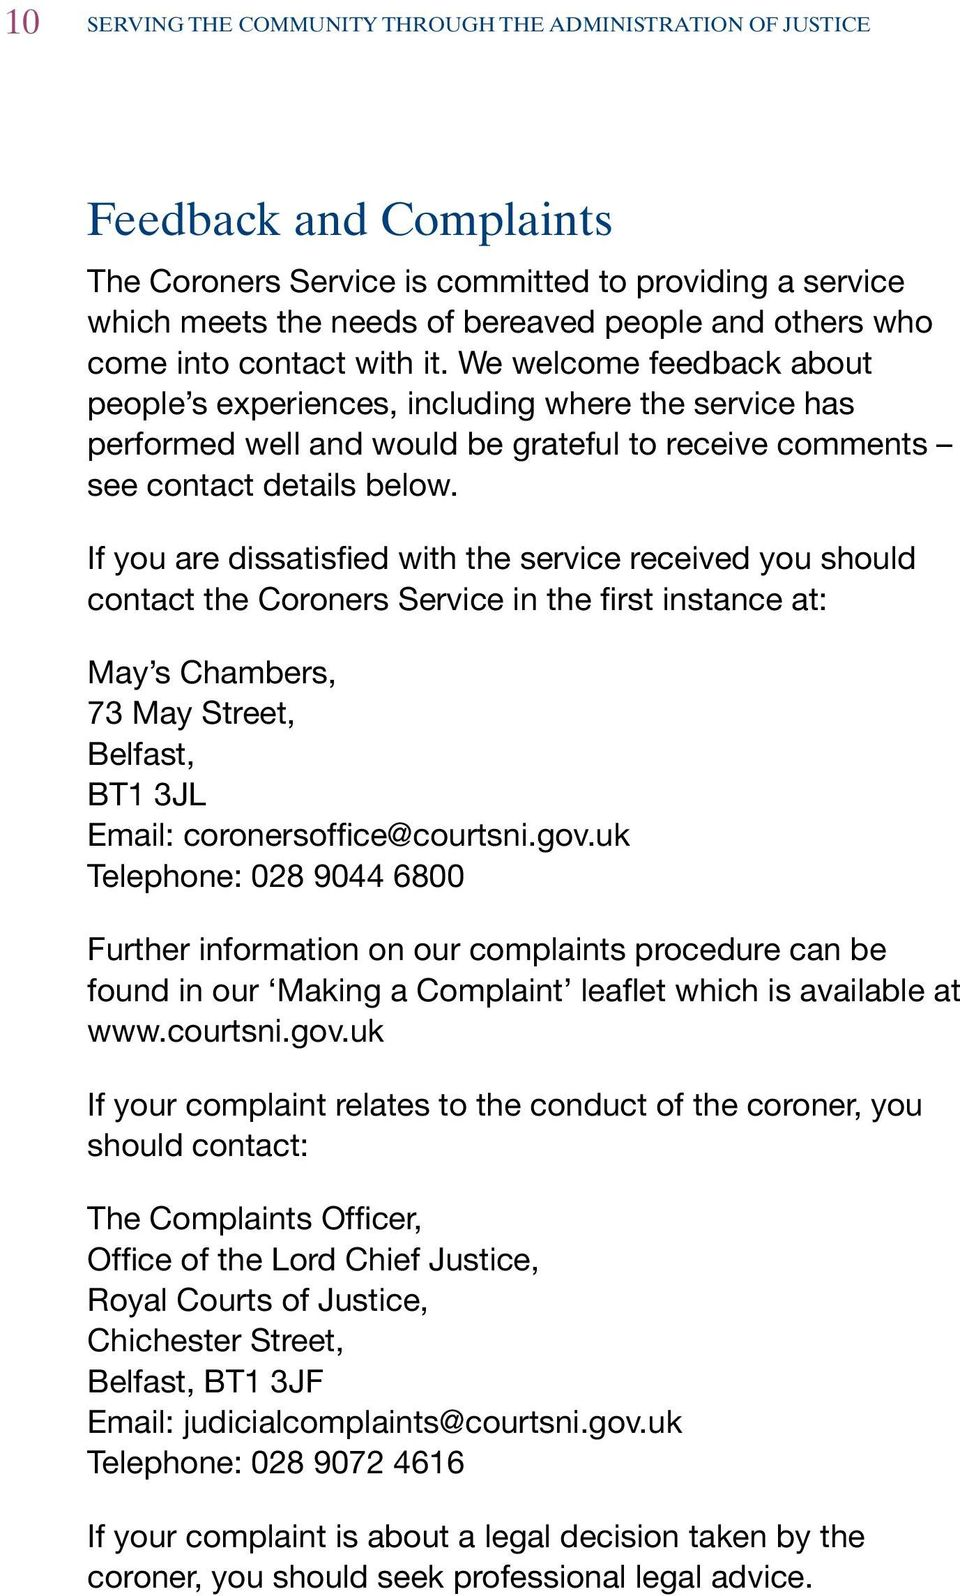 If you are dissatisfied with the service received you should contact the Coroners Service in the first instance at: May s Chambers, 73 May Street, Belfast, BT1 3JL Email: coronersoffice@courtsni.gov.